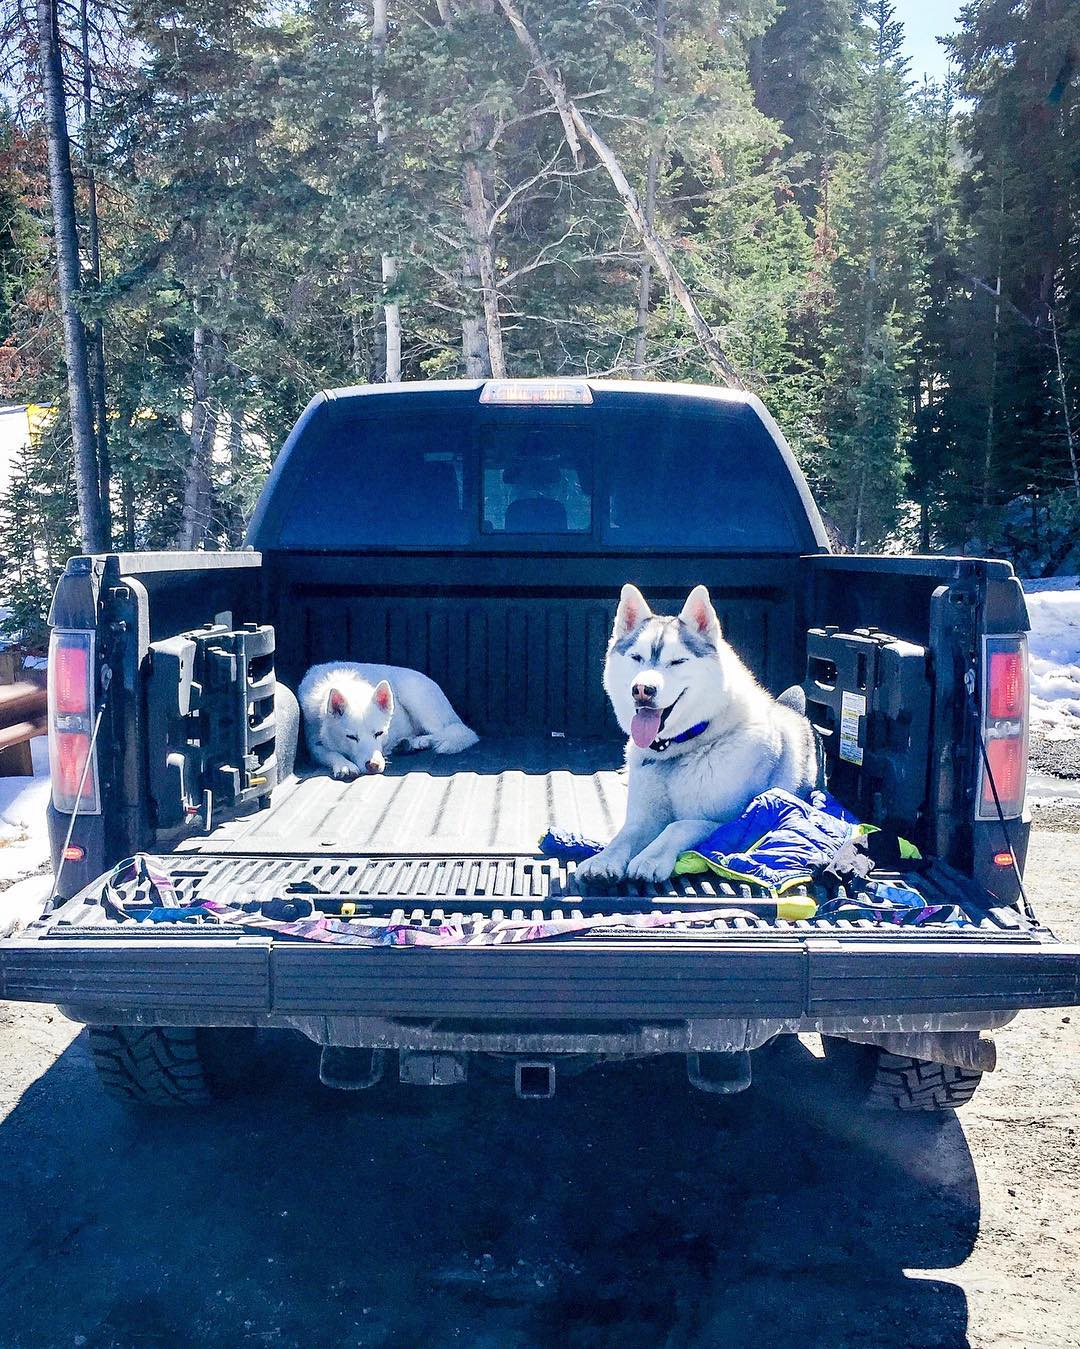 After a long hike yesterday filled with spring snow, exploring, chasing random wildlife, sniffing butts, and play-fighting each other, Bentley and Yuki were toast. That means lounge time in the Raptor bed. #FordRaptor #akadogbed #fureverywhere...